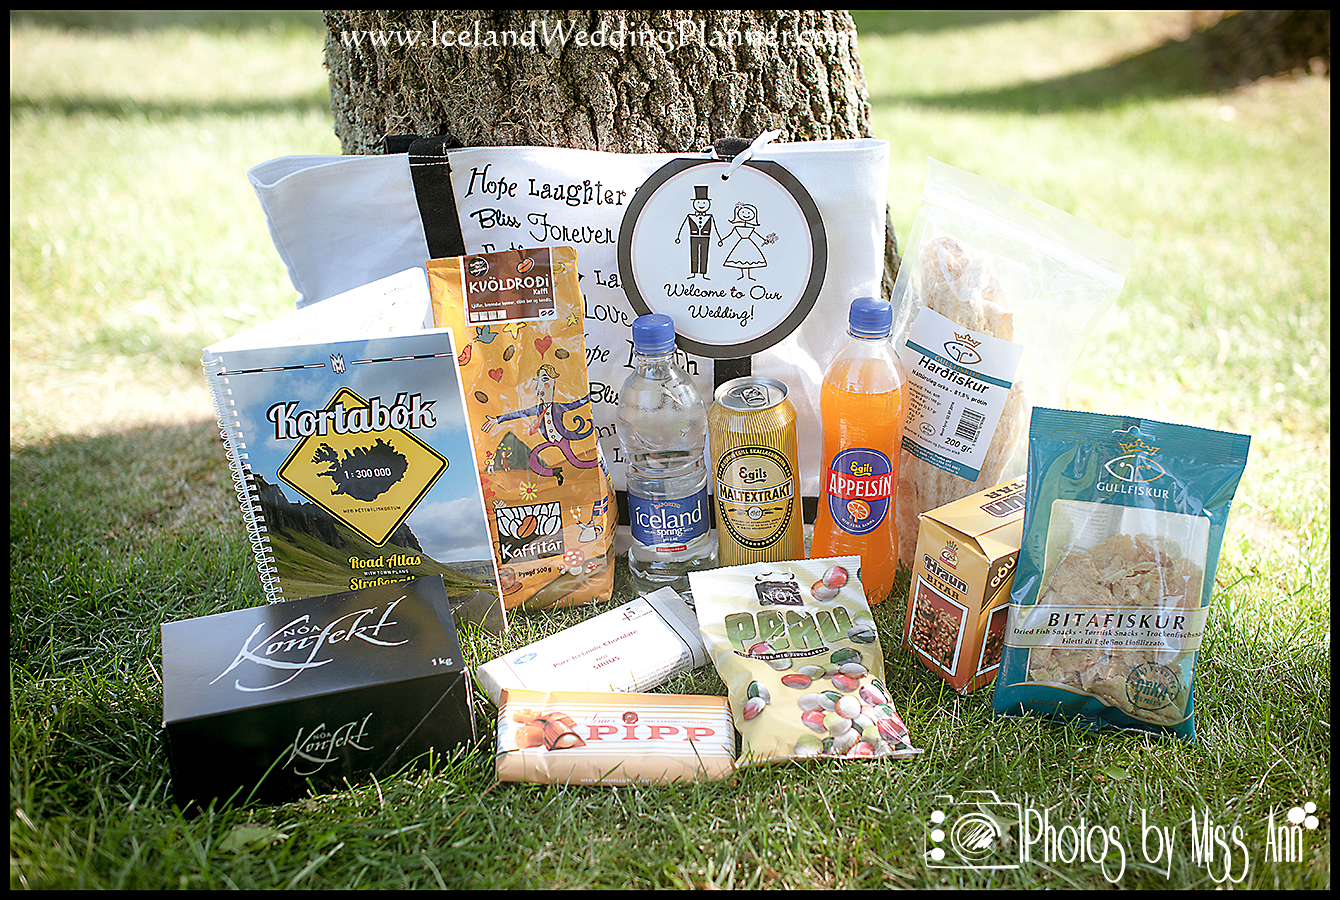 Wedding Welcome Bags.The Importance Of Welcome Bags For Iceland Weddings Iceland